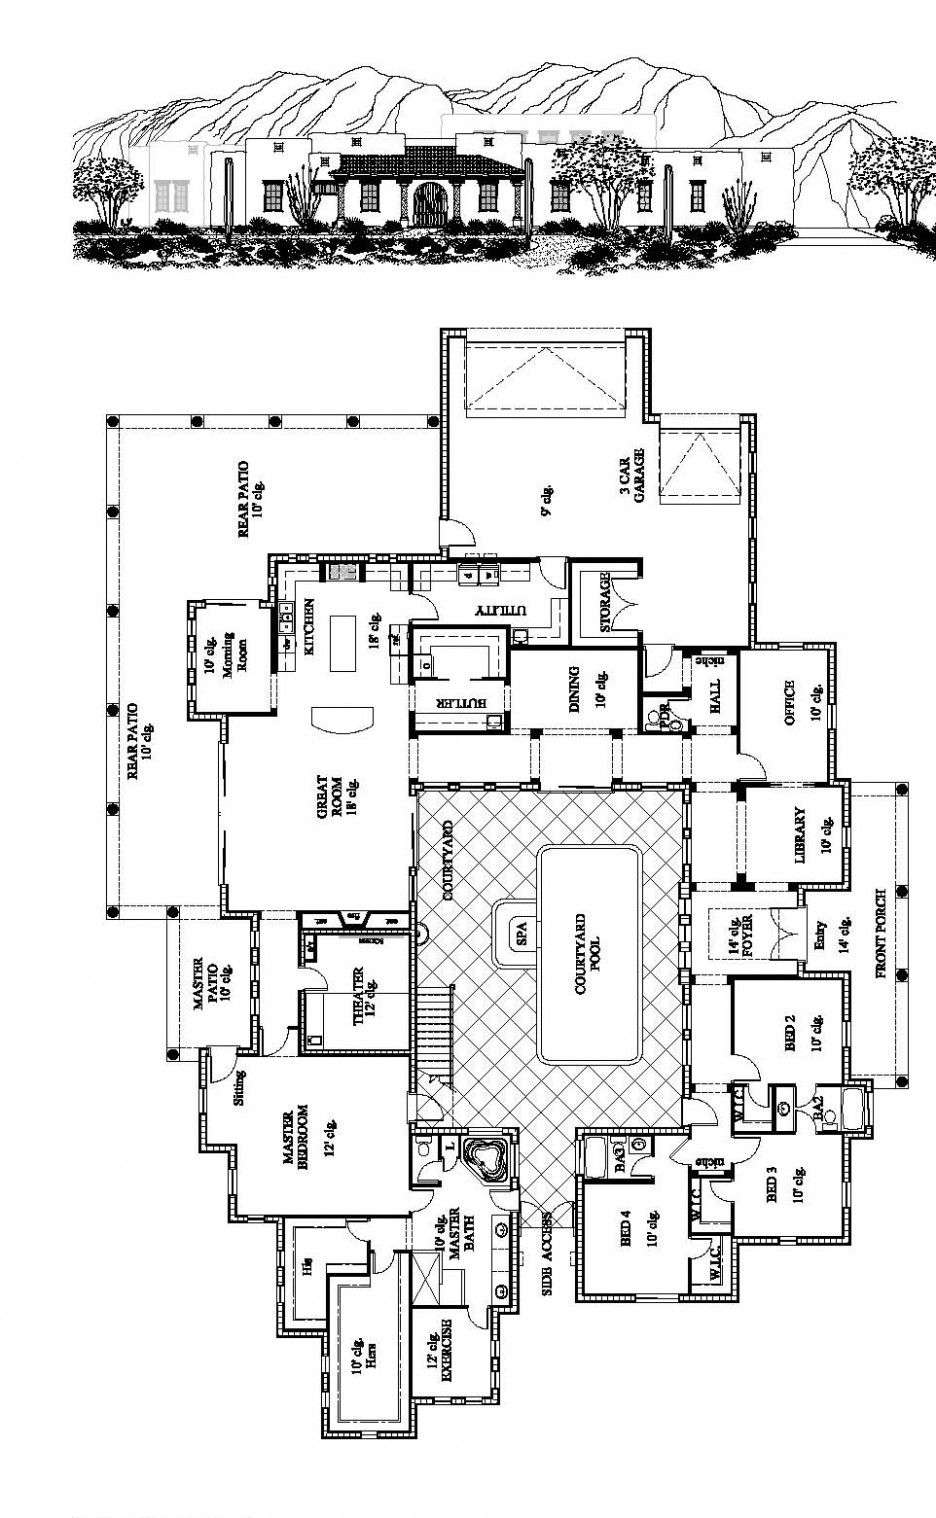 Appealing ICF House Plans with Large Lawn: Fabulous ...